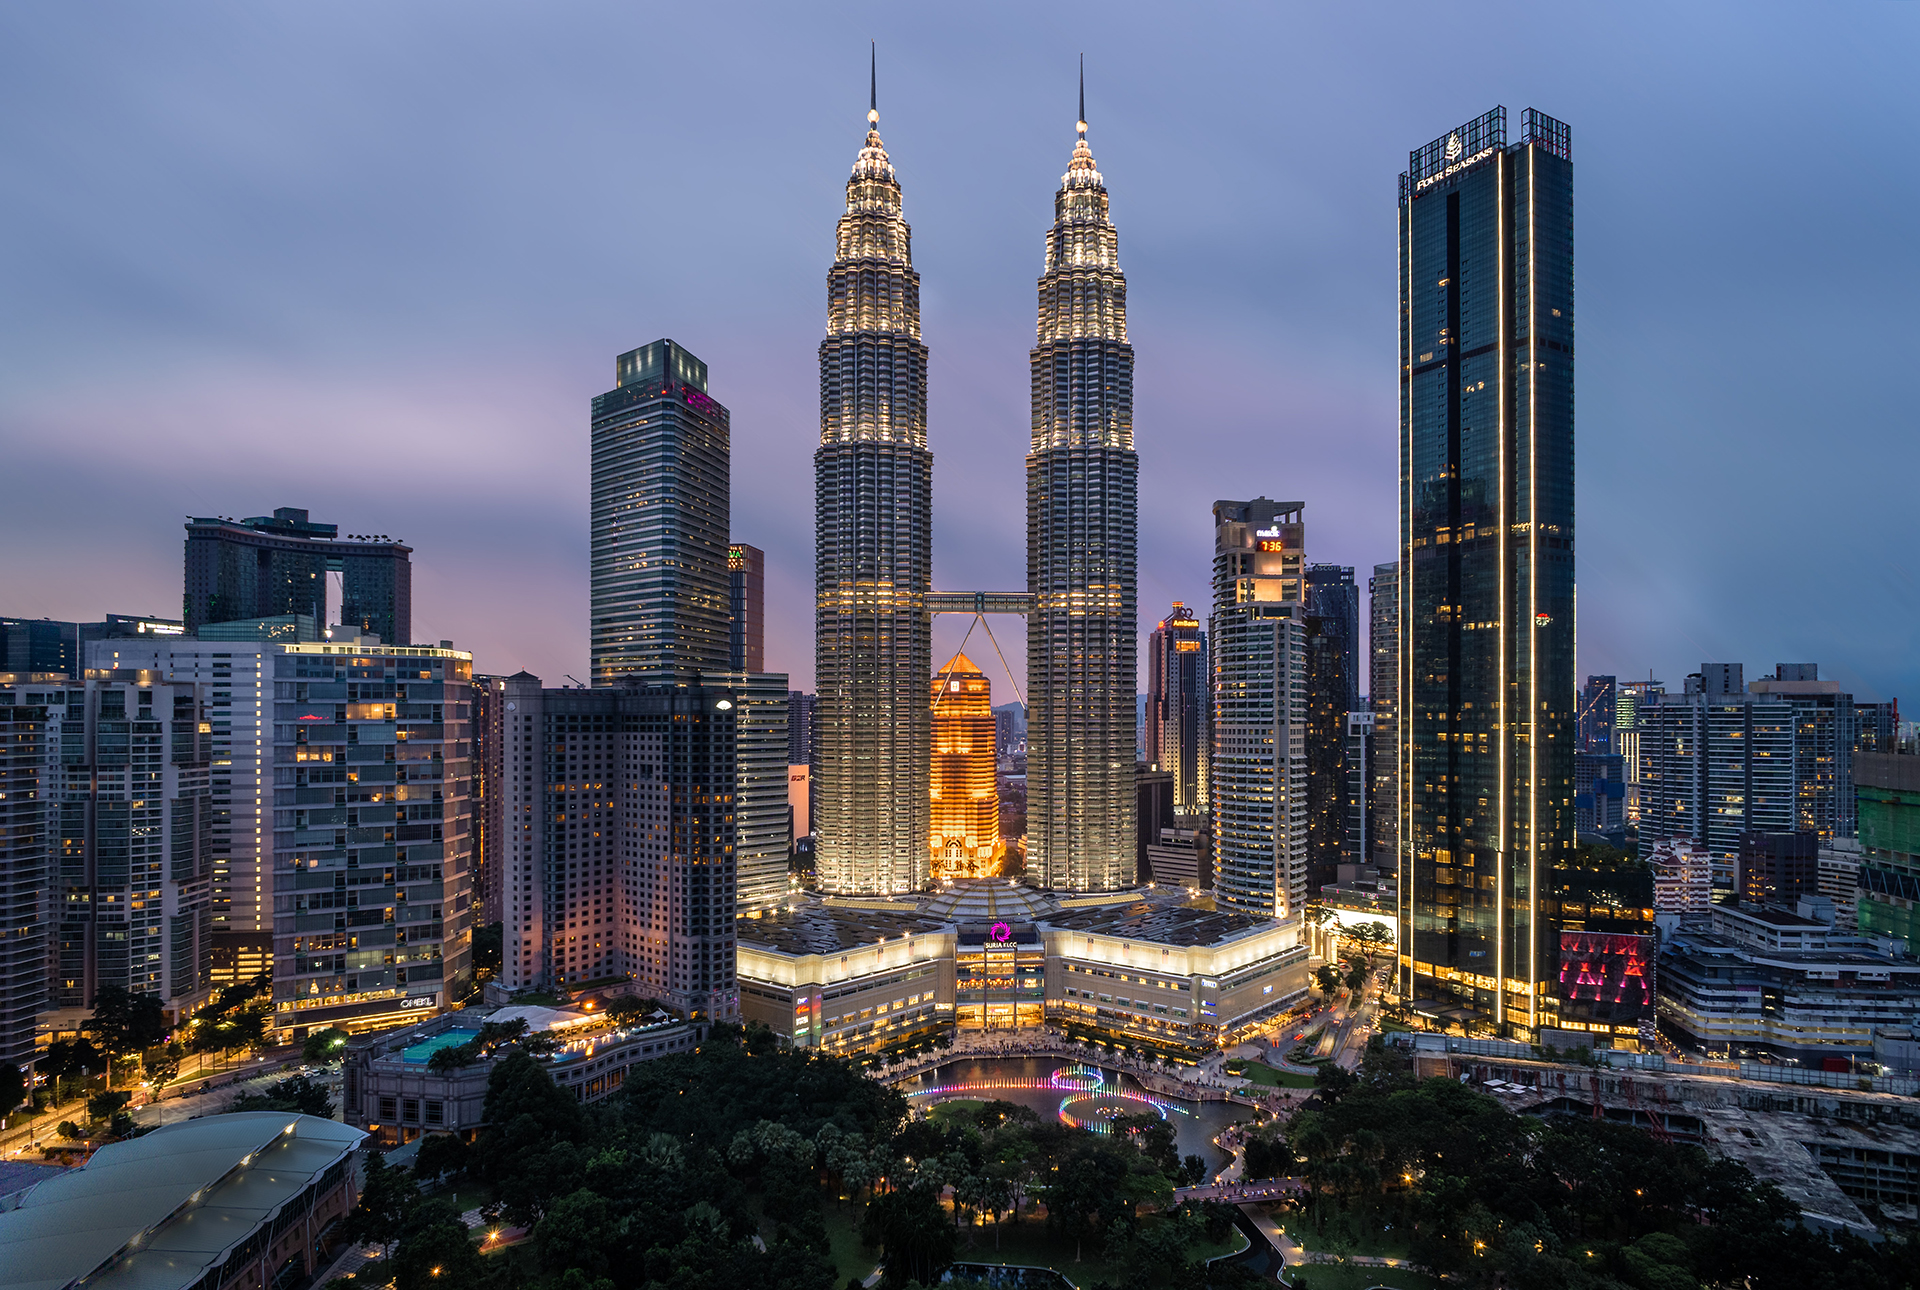 Support Services Group – Asia Pacific expands to Malaysia